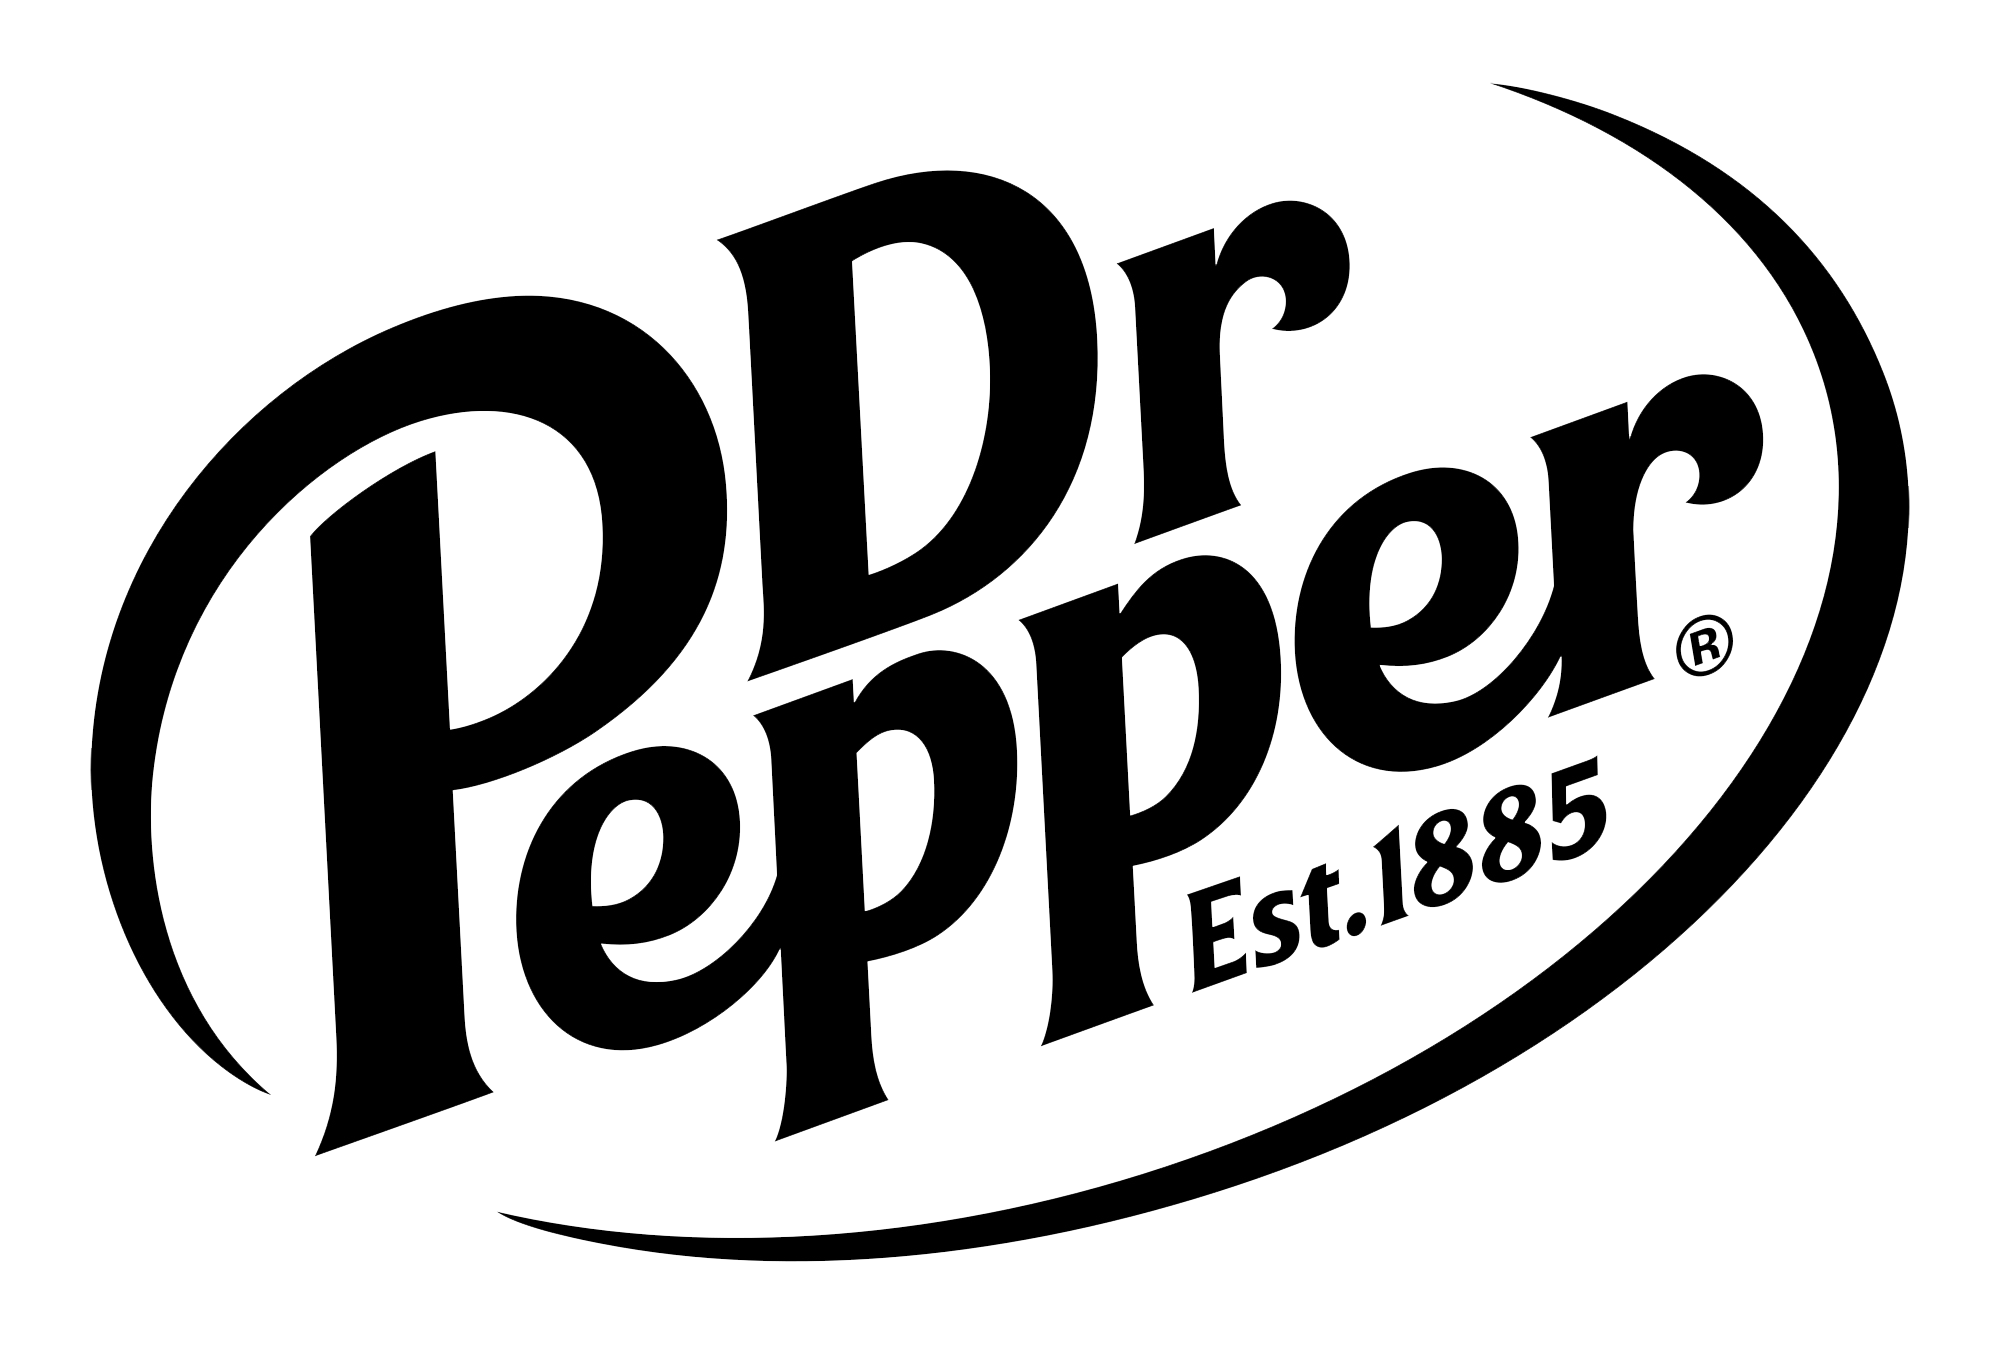 graphic design Dr. pepper logo